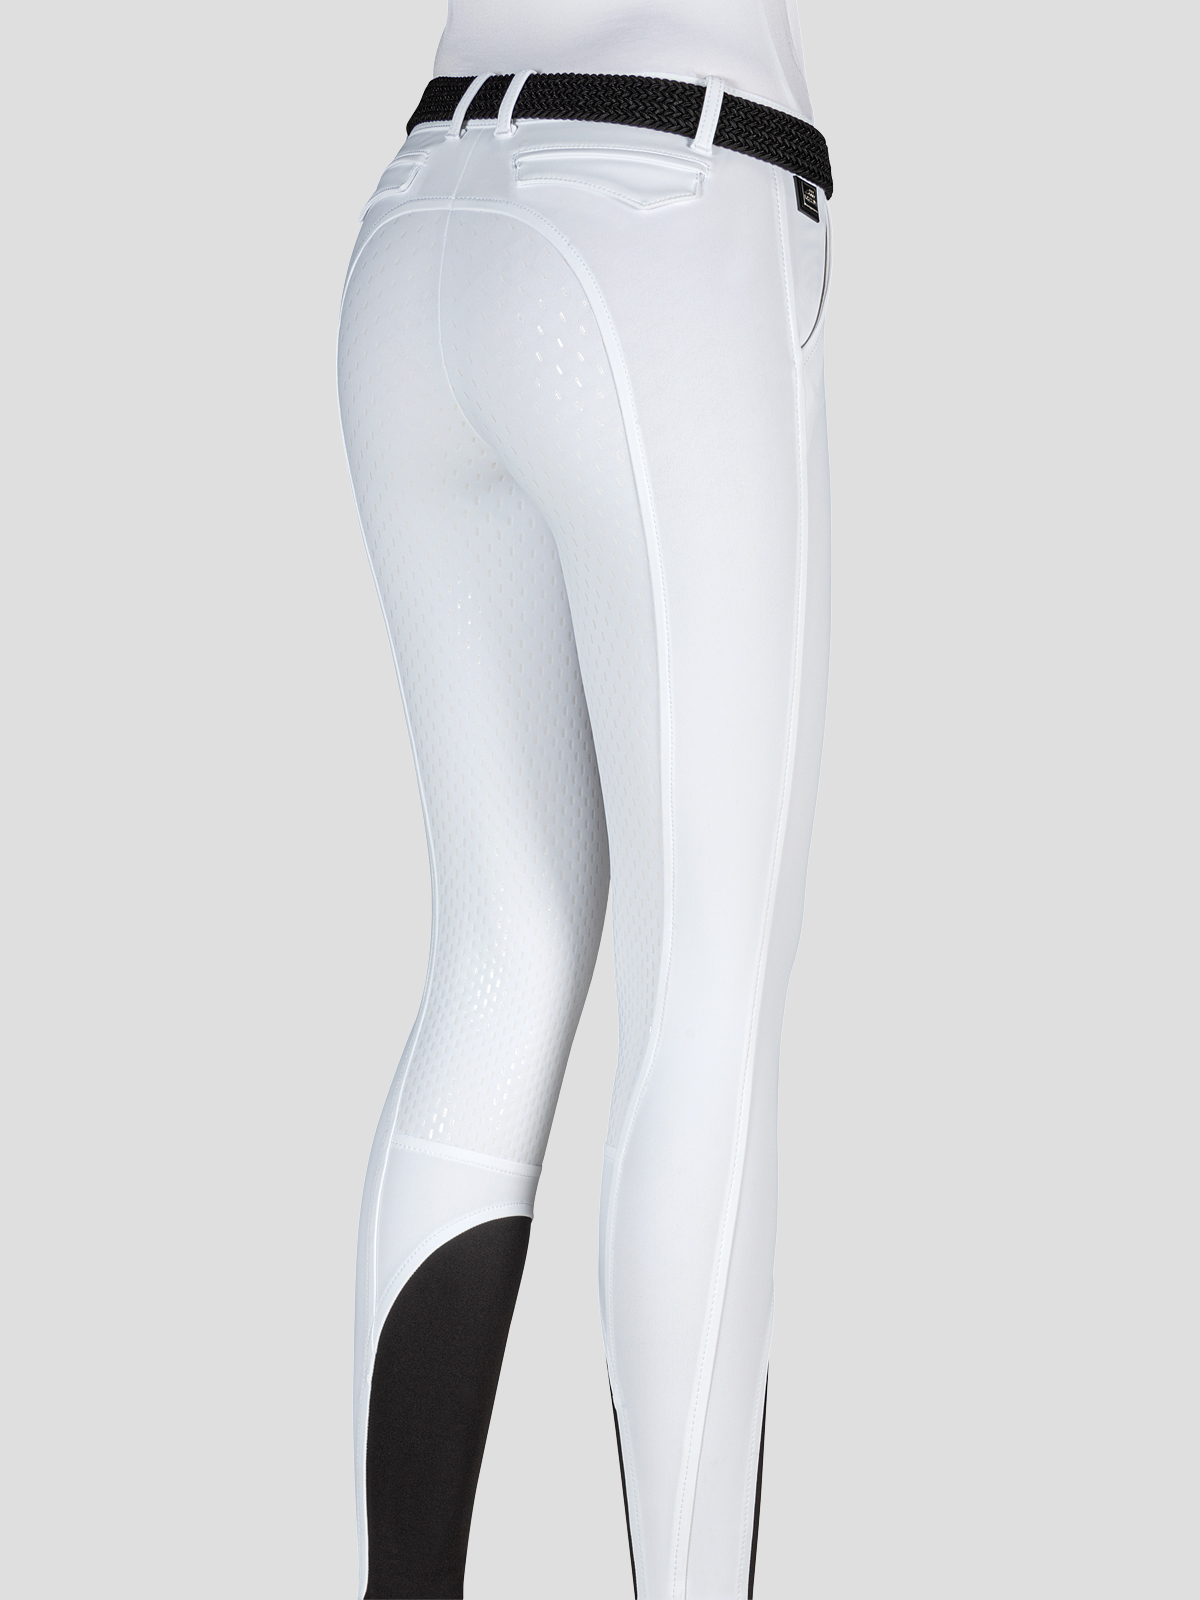 JULIK WOMEN'S FULL GRIP RIDING BREECHES IN B-MOVE FABRIC 2